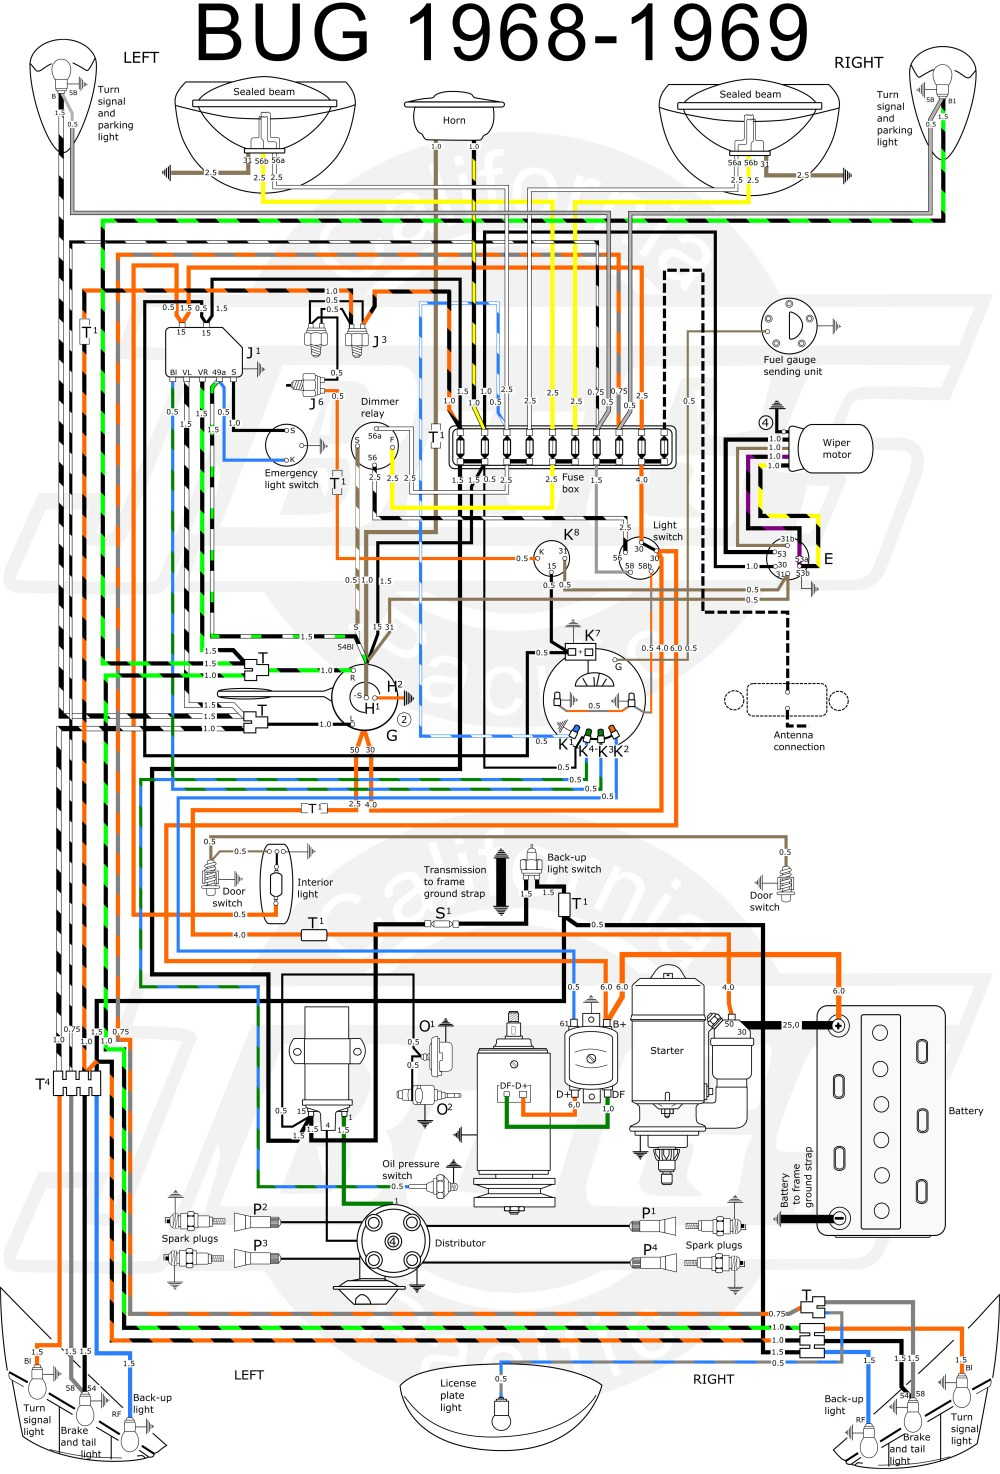 medium resolution of toshiba soft start wiring diagrams wiring librarywiring toshiba diagram 1004flf3bshd electrical diagram schematics rh zavoral genealogy